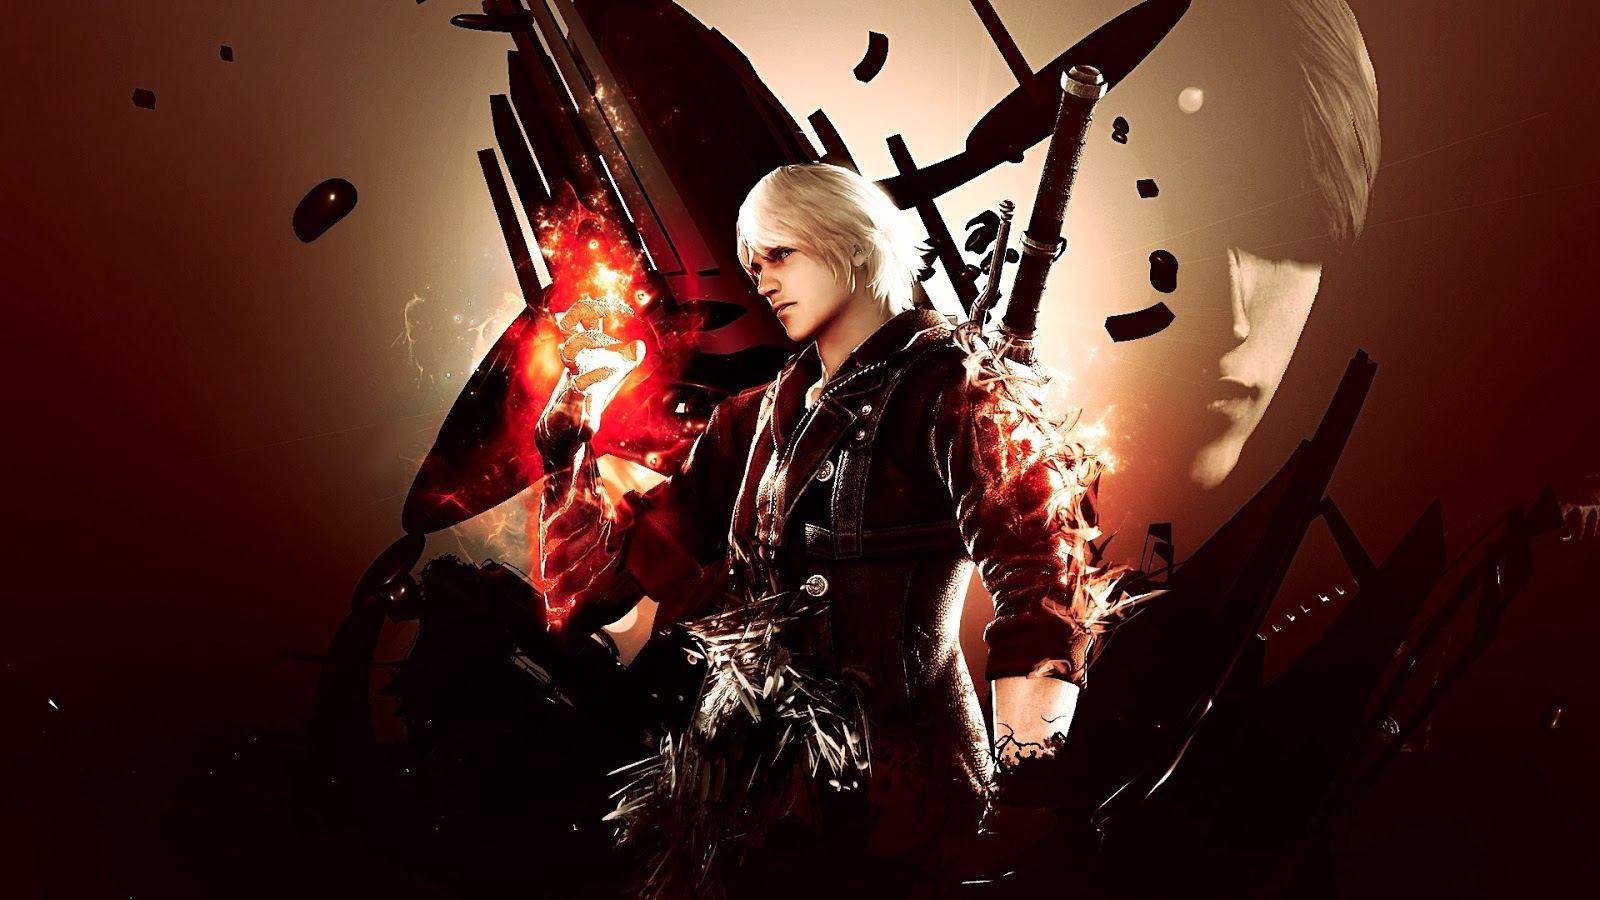 Devil may cry 5 hd wallpapers walls720 devil may cry 5 hd wallpapers voltagebd Choice Image